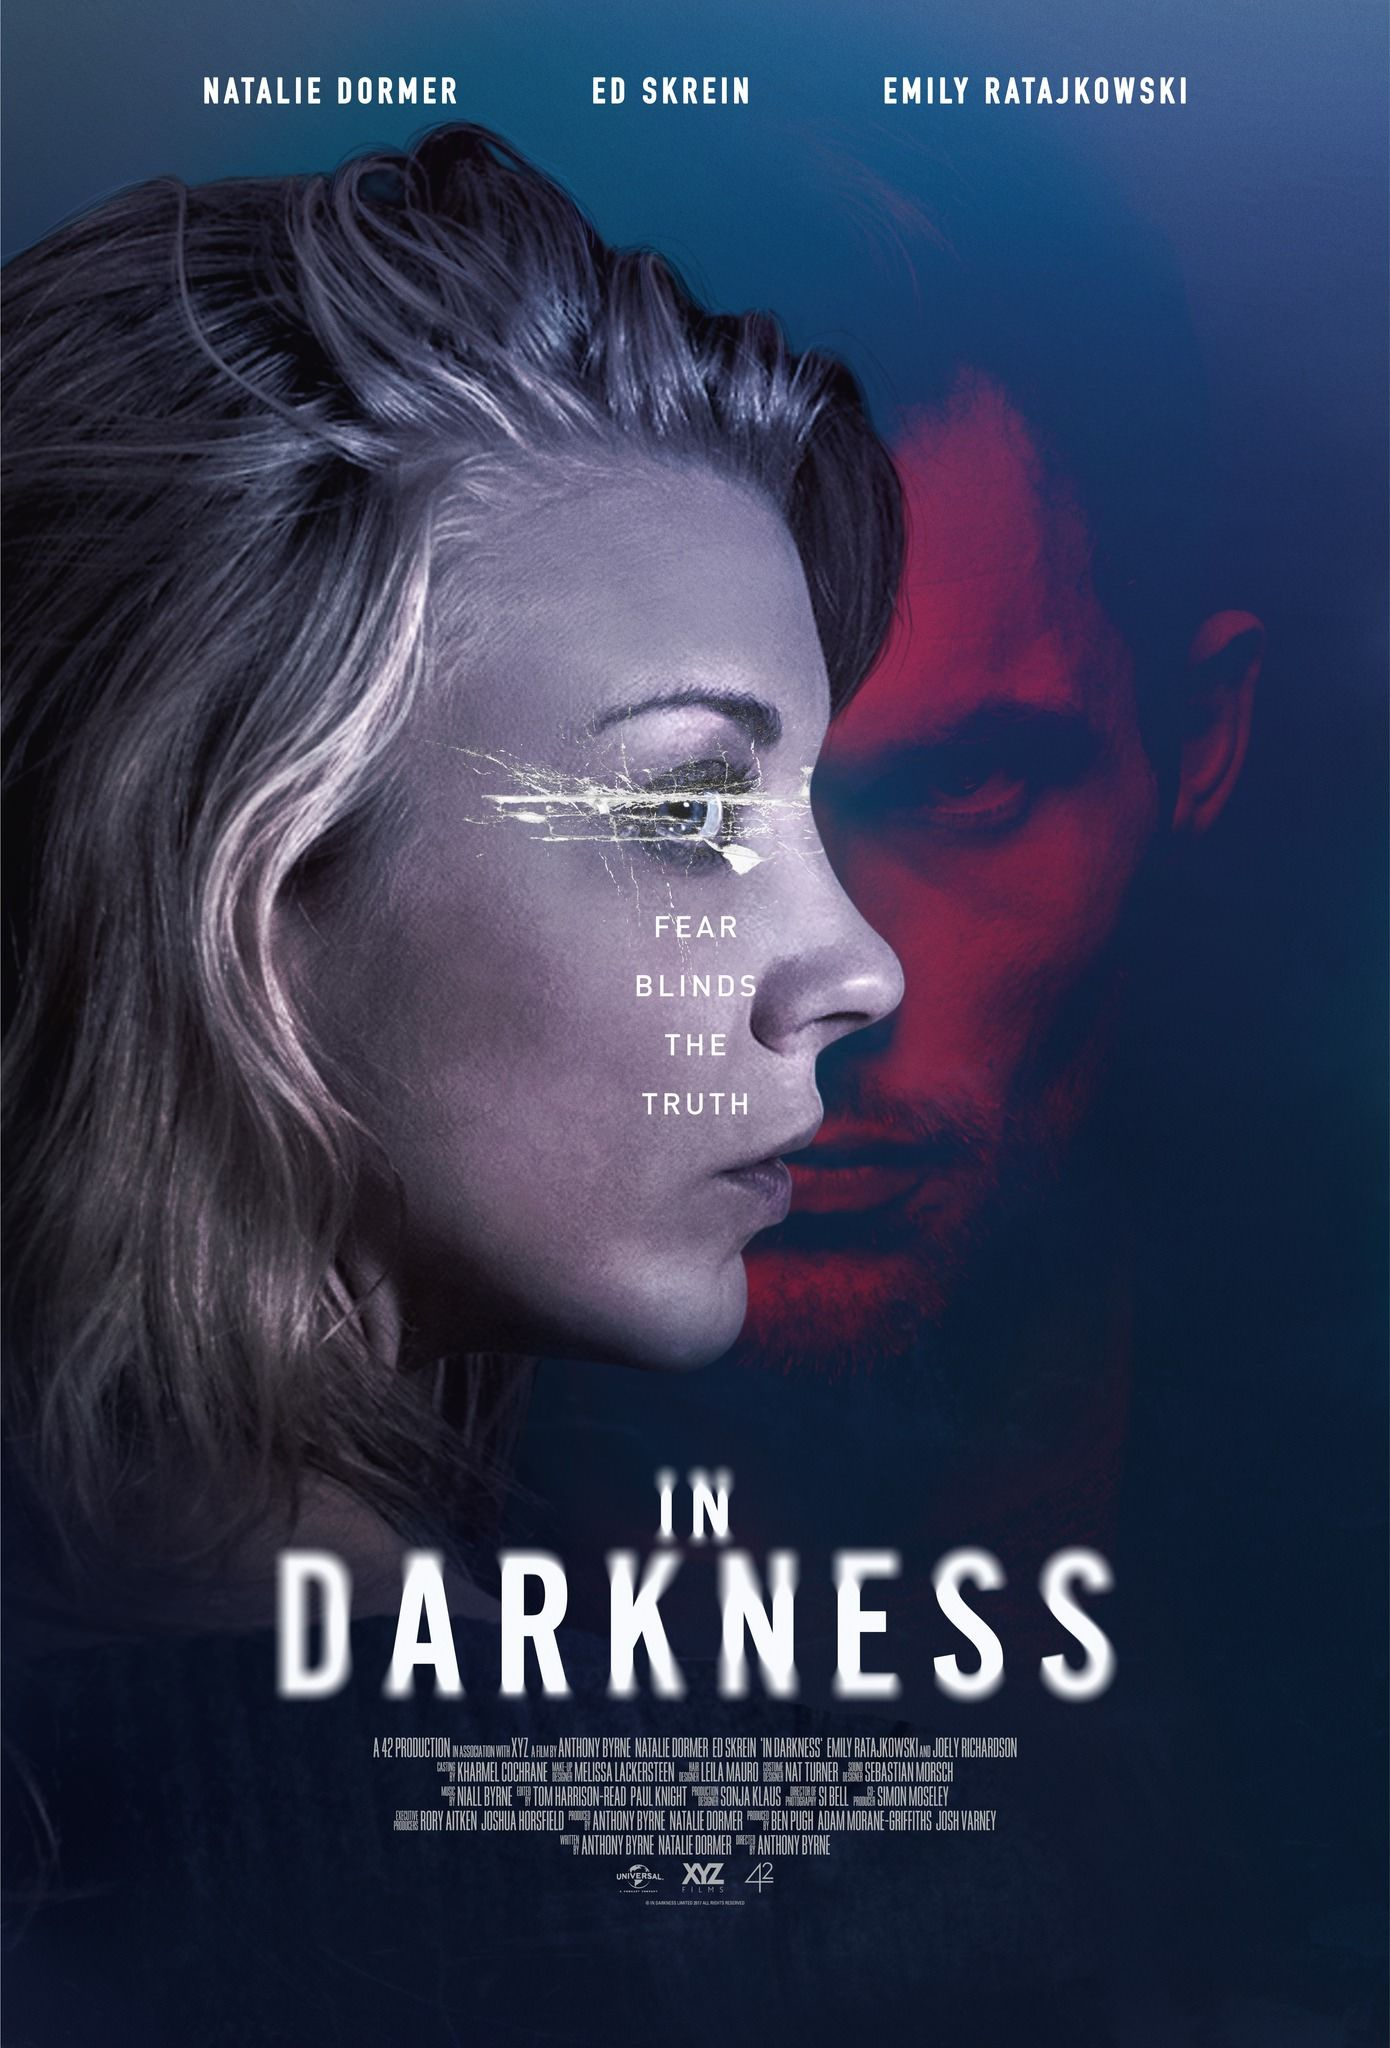 First Poster In Darkness Natalie Dormer Ed Skrein Emily